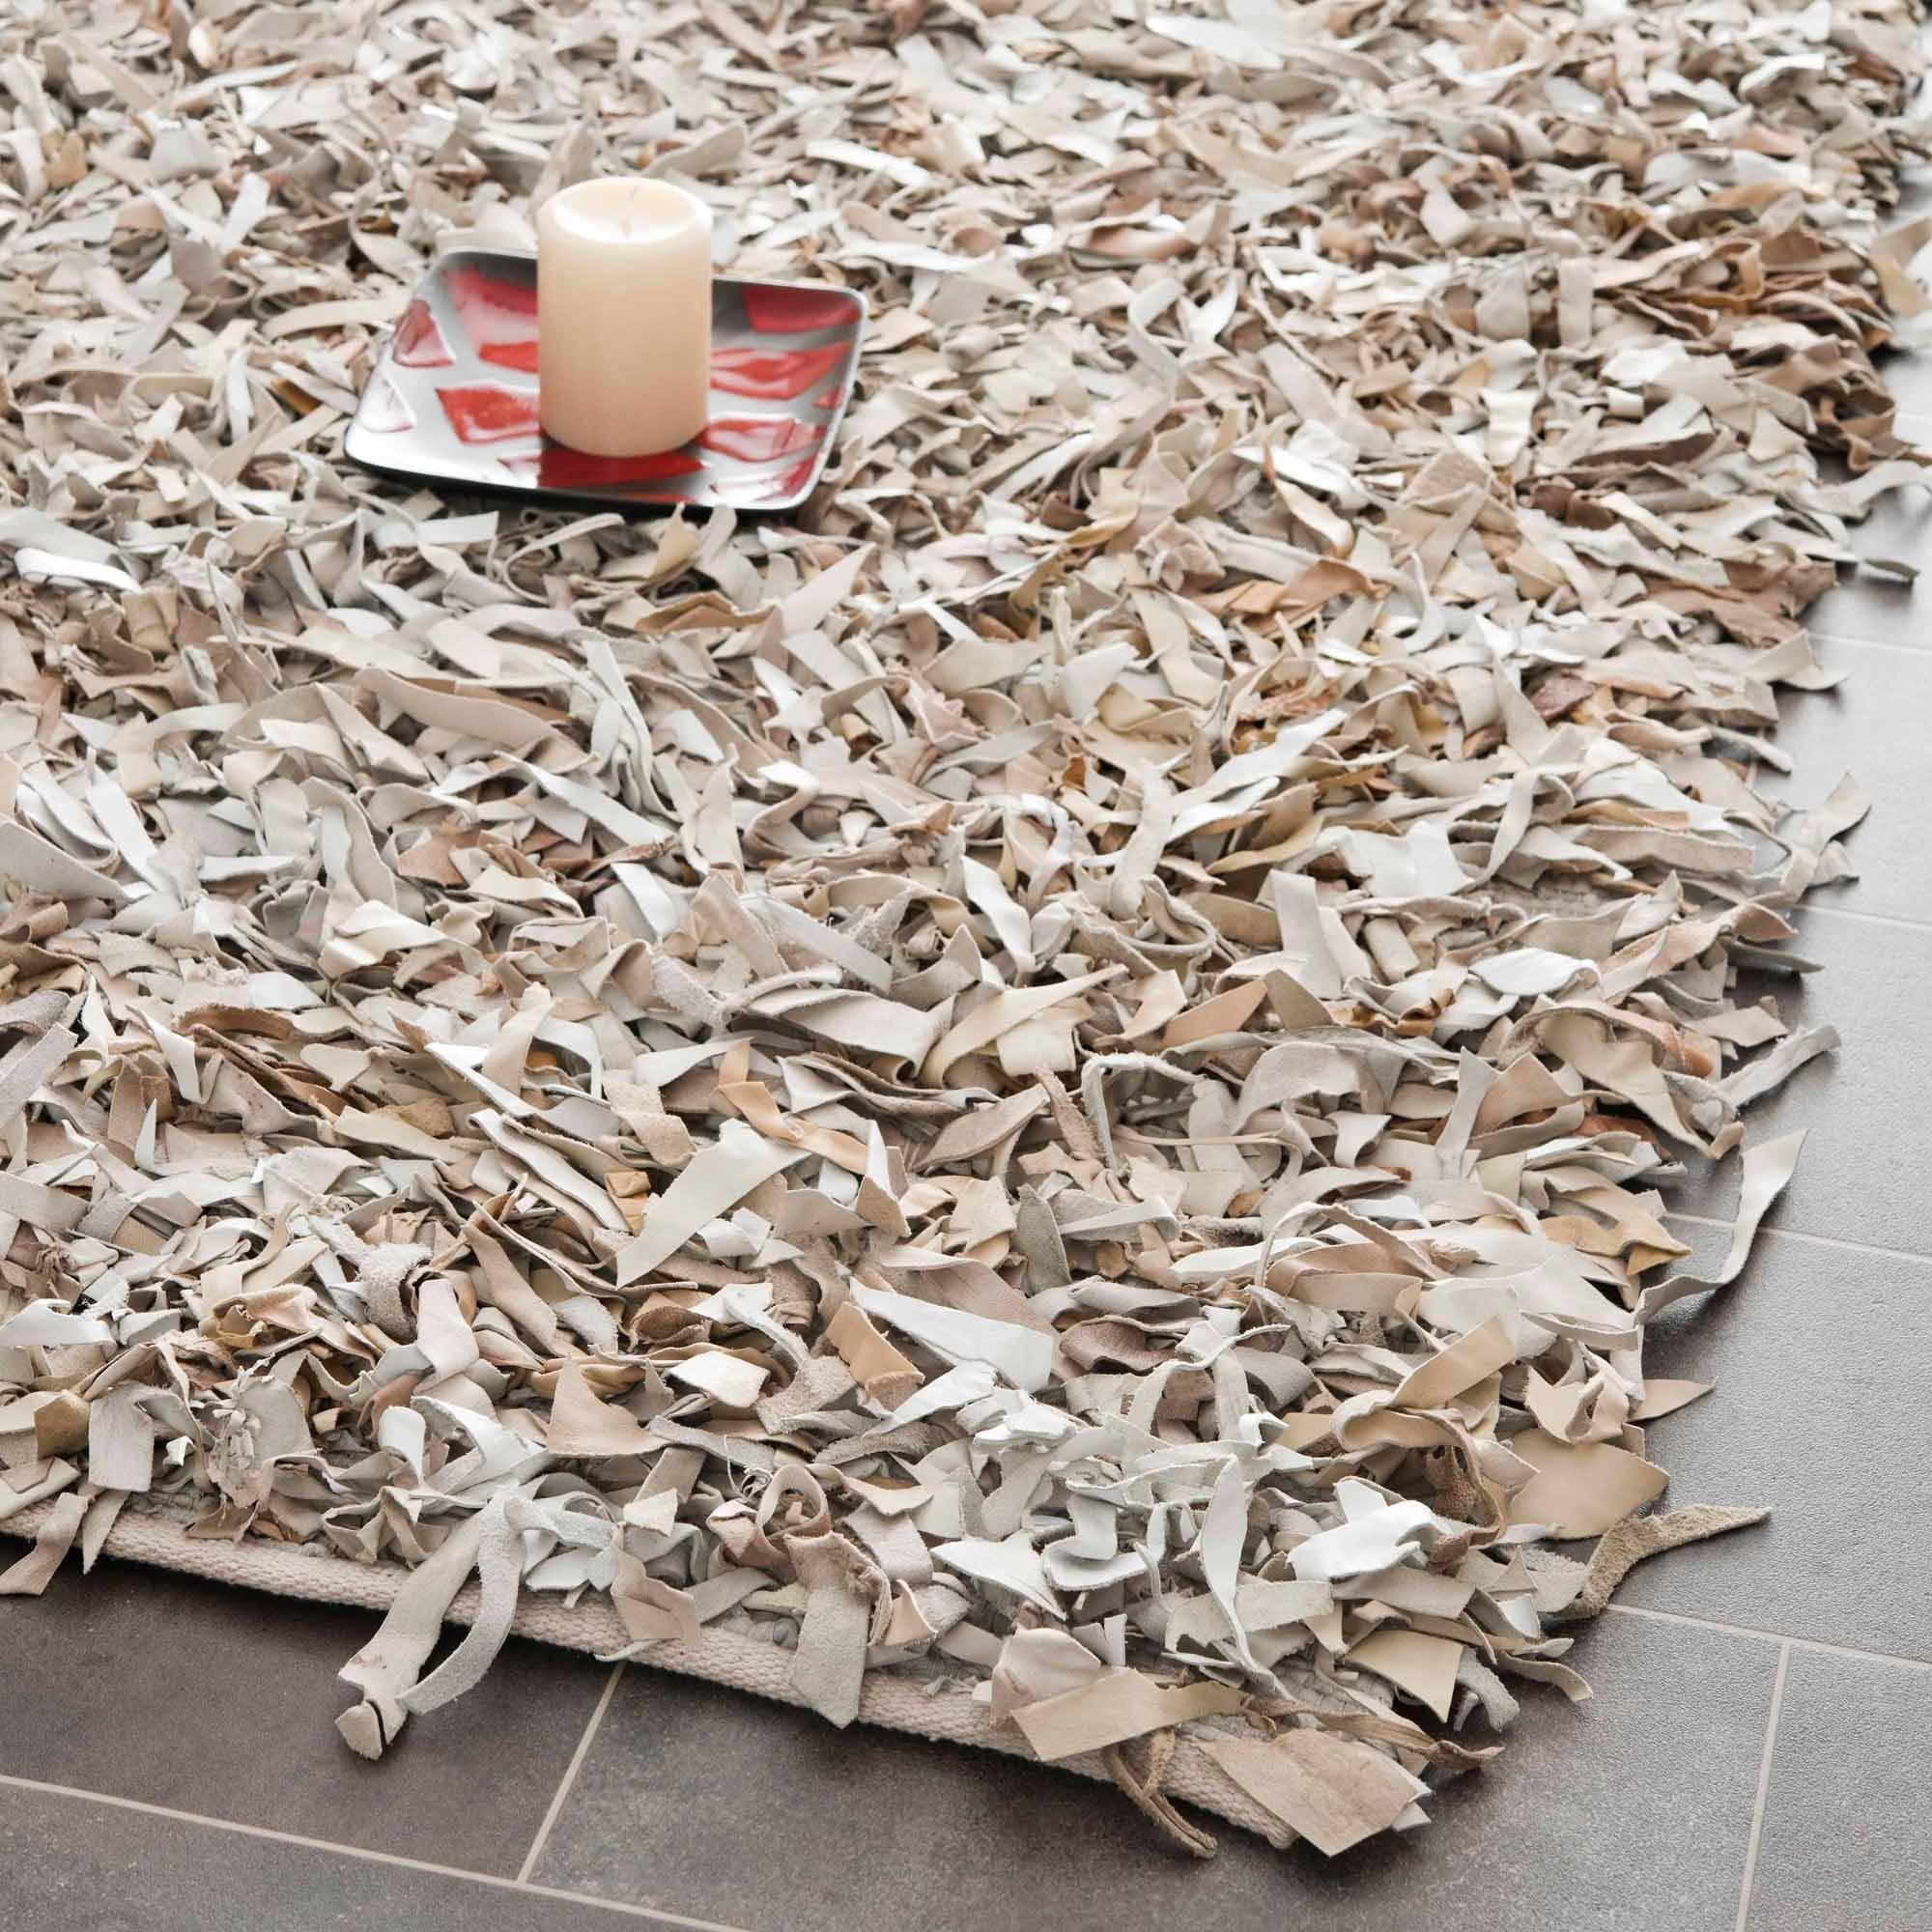 Leather shag rugs safavieh mariam leather shag area rug or runner - walmart.com GXBWNRX